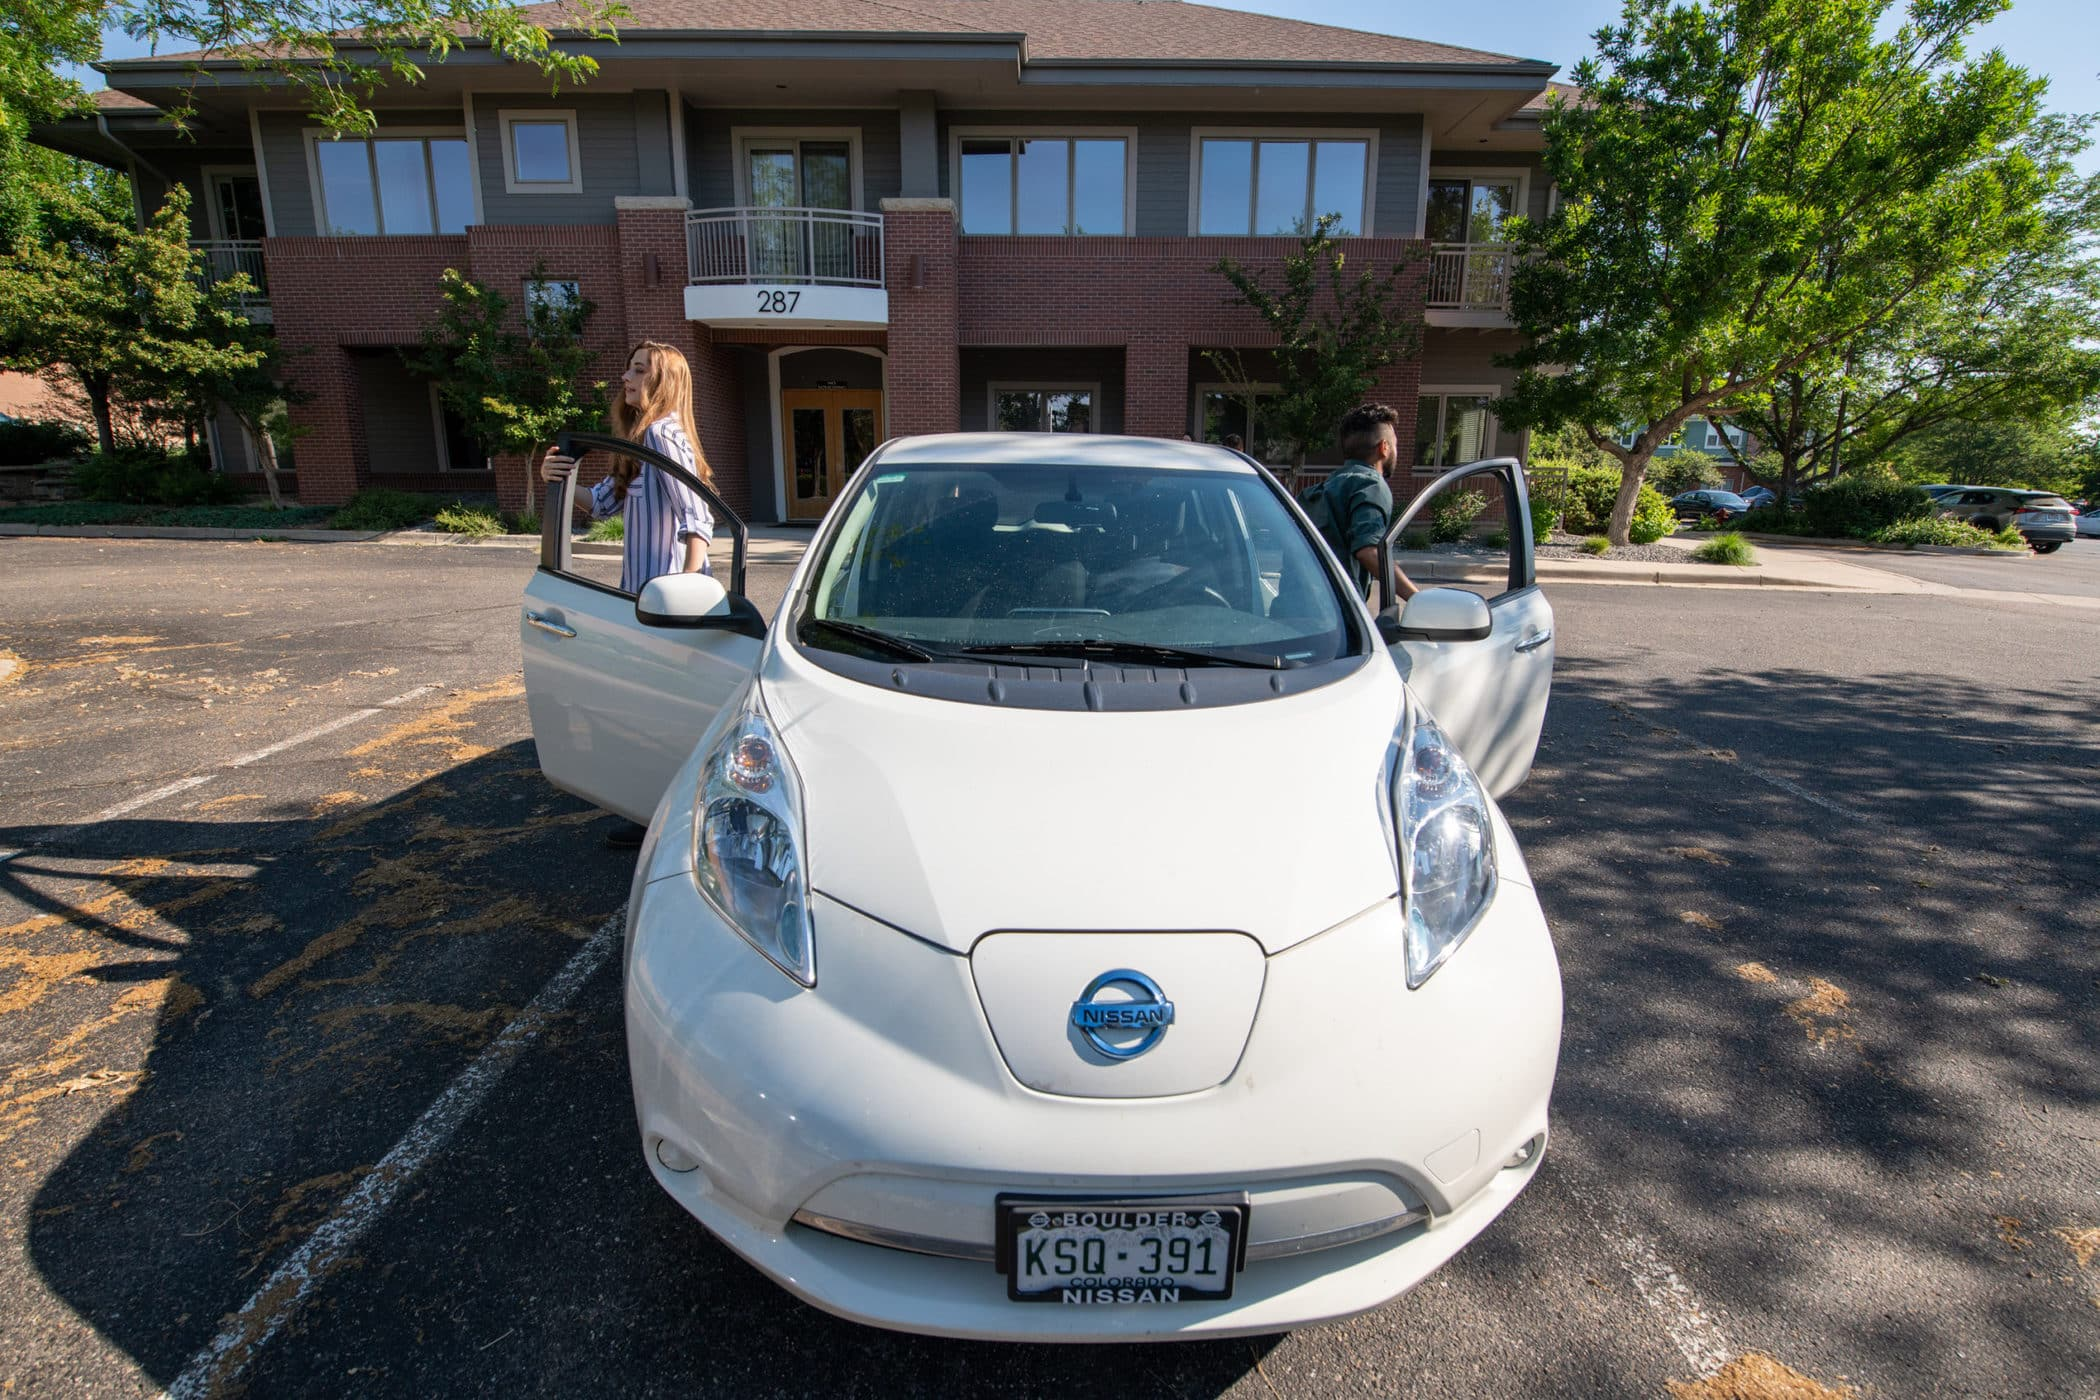 Two people get out of their electric vehicle